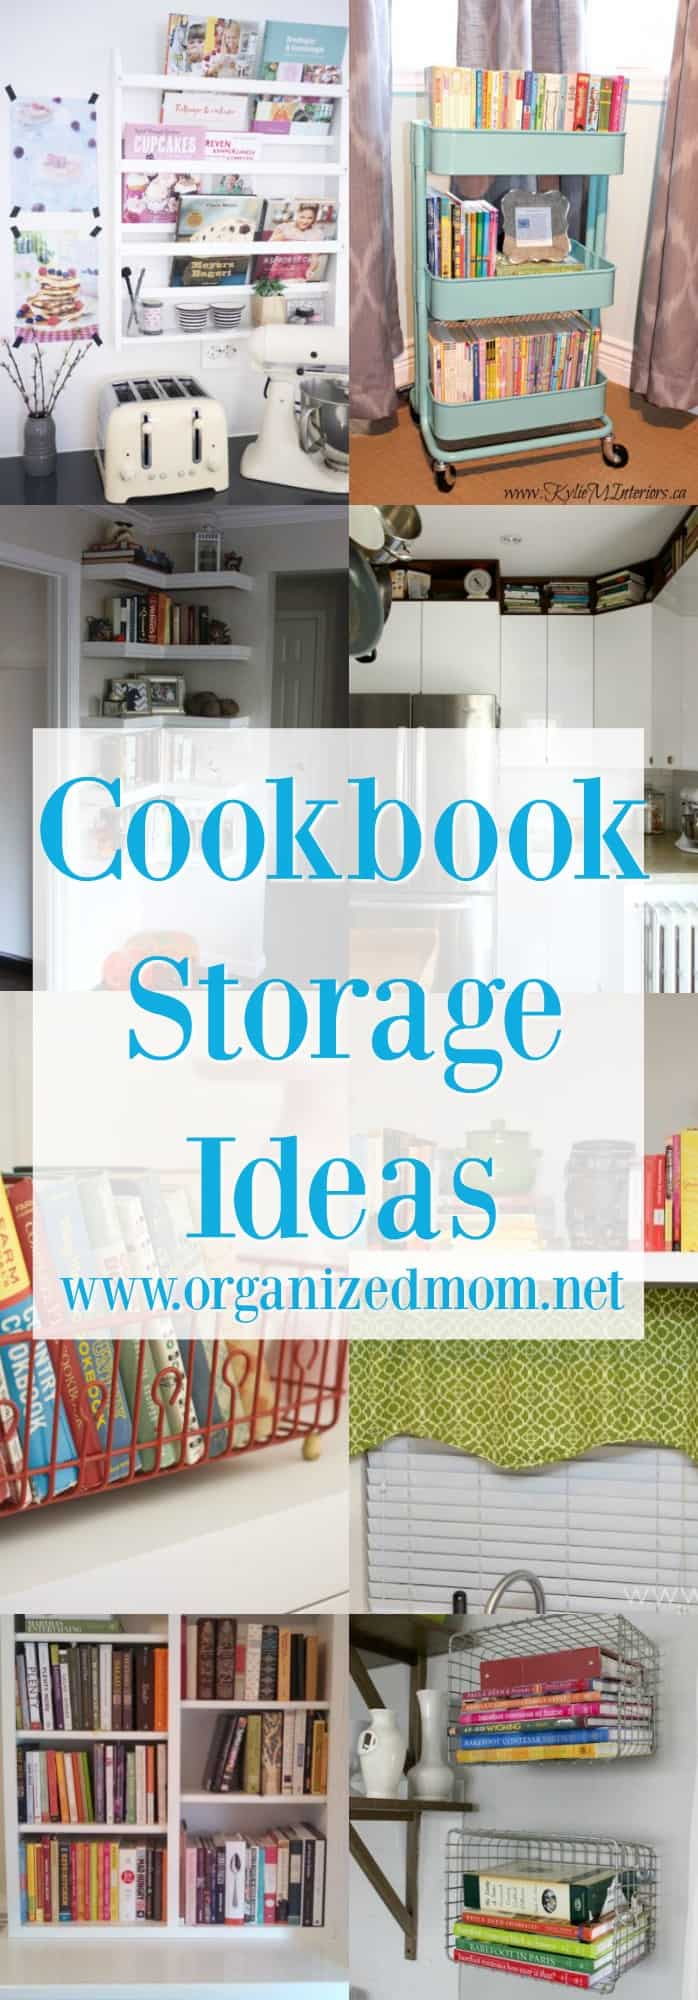 Home Decor - Storing cookbooks for organization, if you don't want to get rid of ANY!